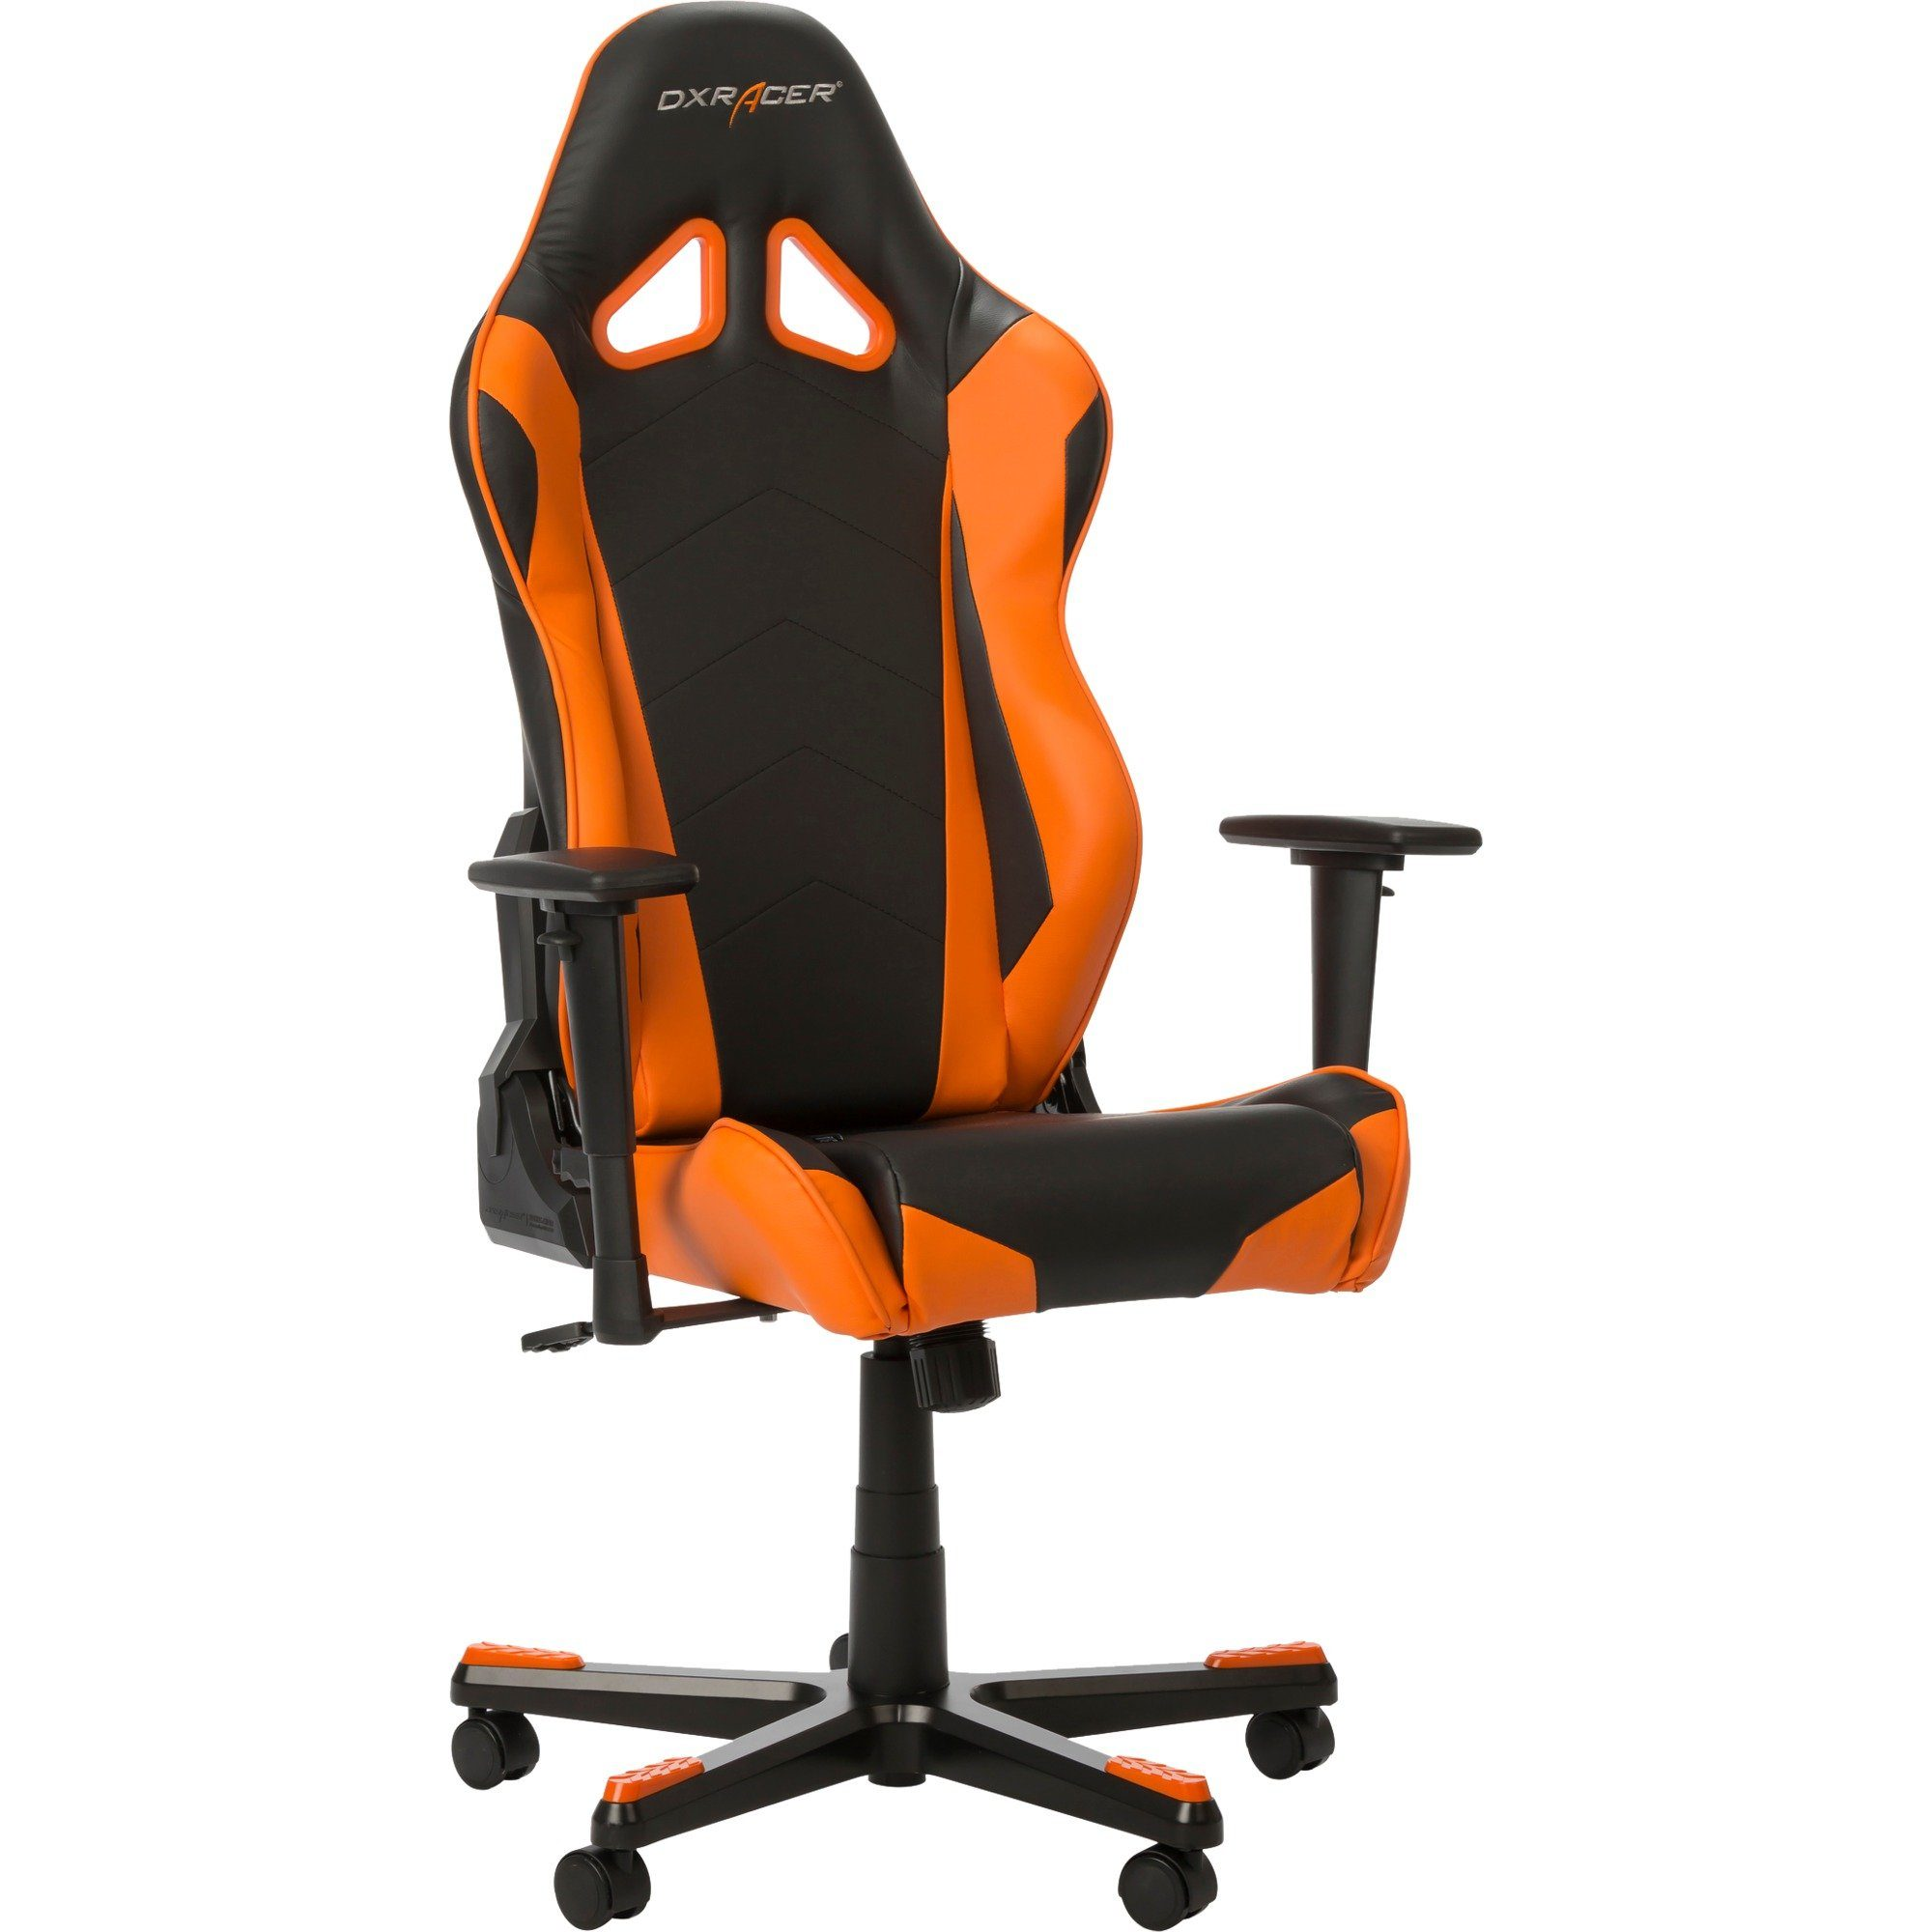 DXRacer Spielsitz »Racing Gaming Chair (OH/RE0/NO)«